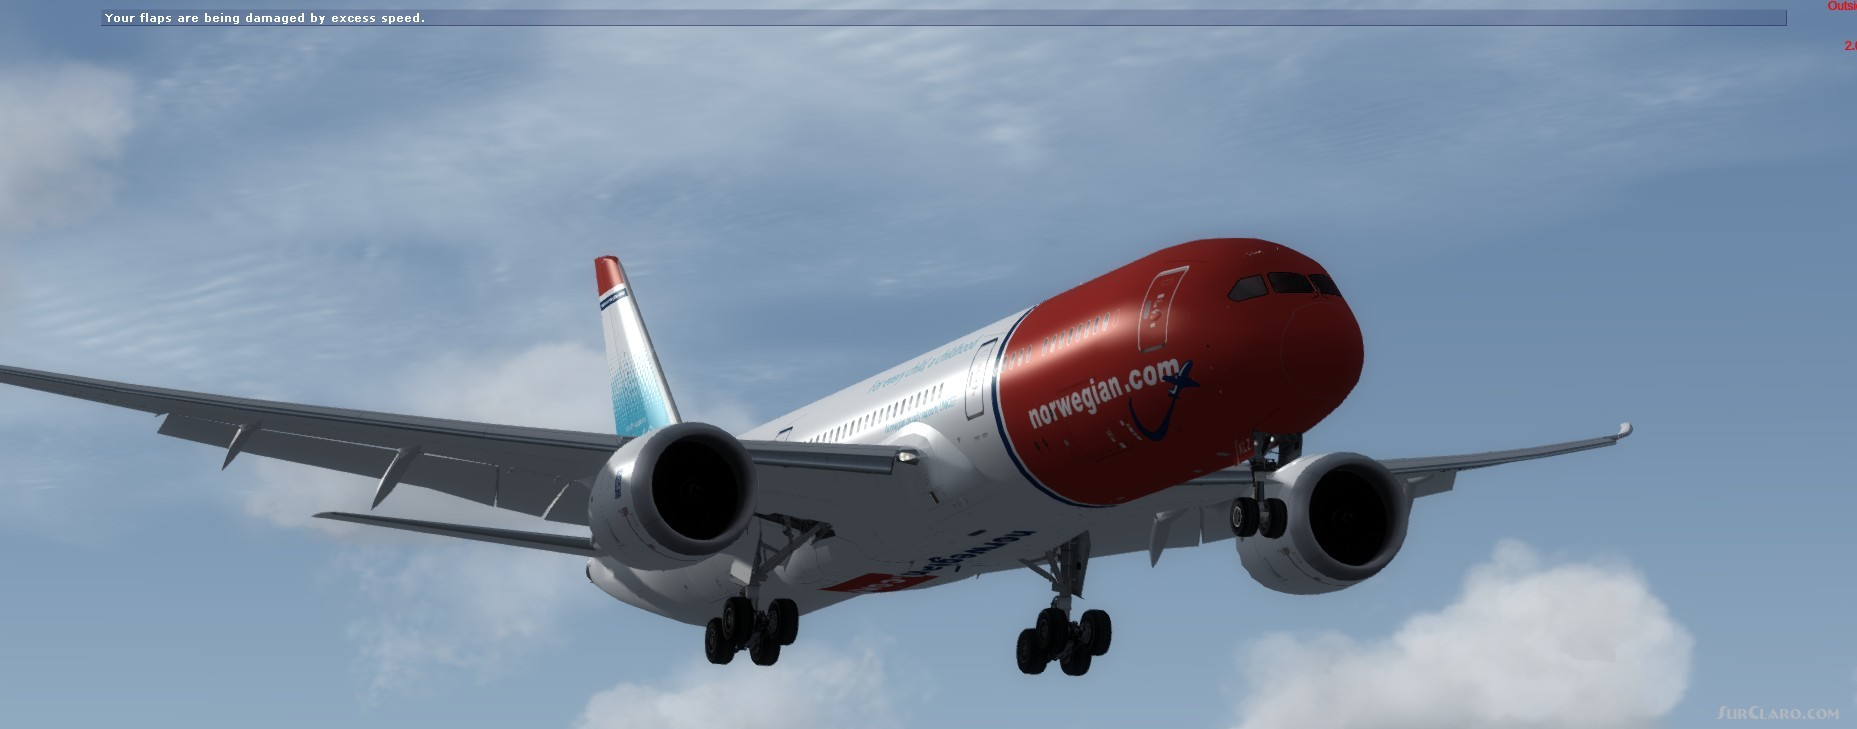 FSX P3D TDS Boeing 787-9 Dreamliner Norwegian Air UK Aircraft